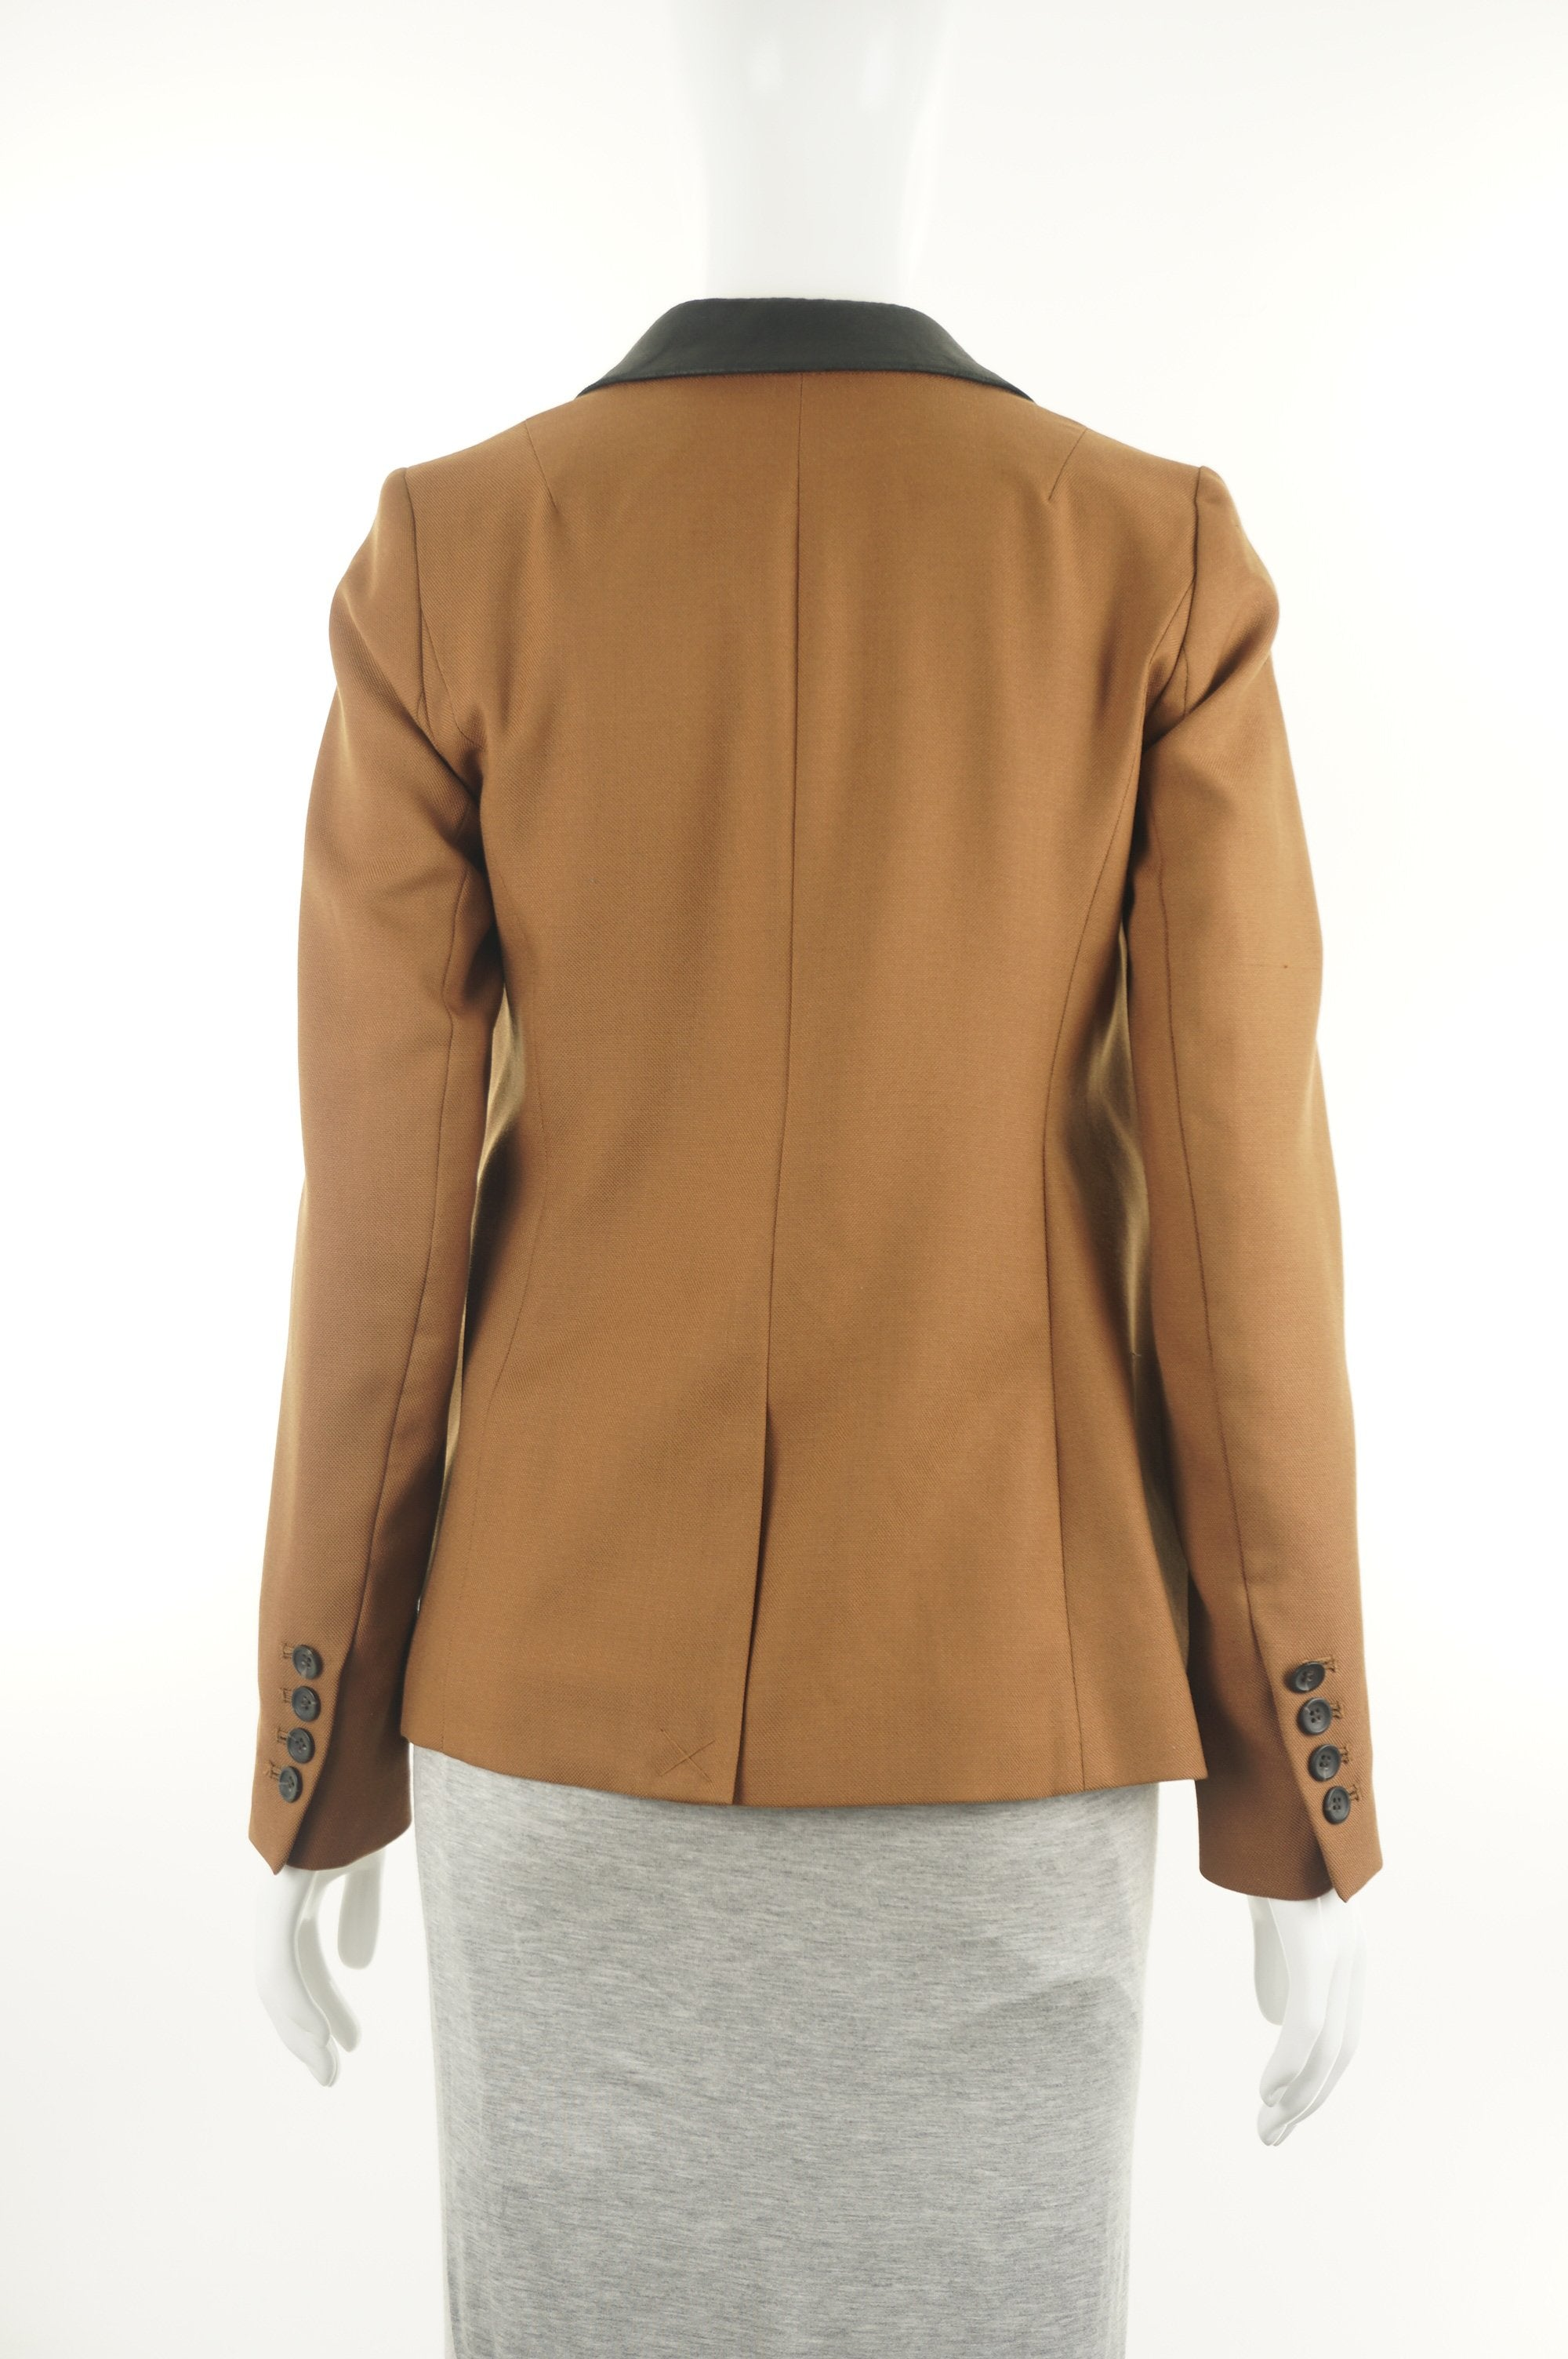 Club Monaco Brown Business Casual Jacket, Business and fashionable? Look no further! This brown business casual jacket is what you've been searching for., Brown, Shell: 55% Wool, 45% Polyester. Lining: 100% Polyester, jacket, women's brown jacket with leather black collar, women's designer brown suit jacket, women's professional wear